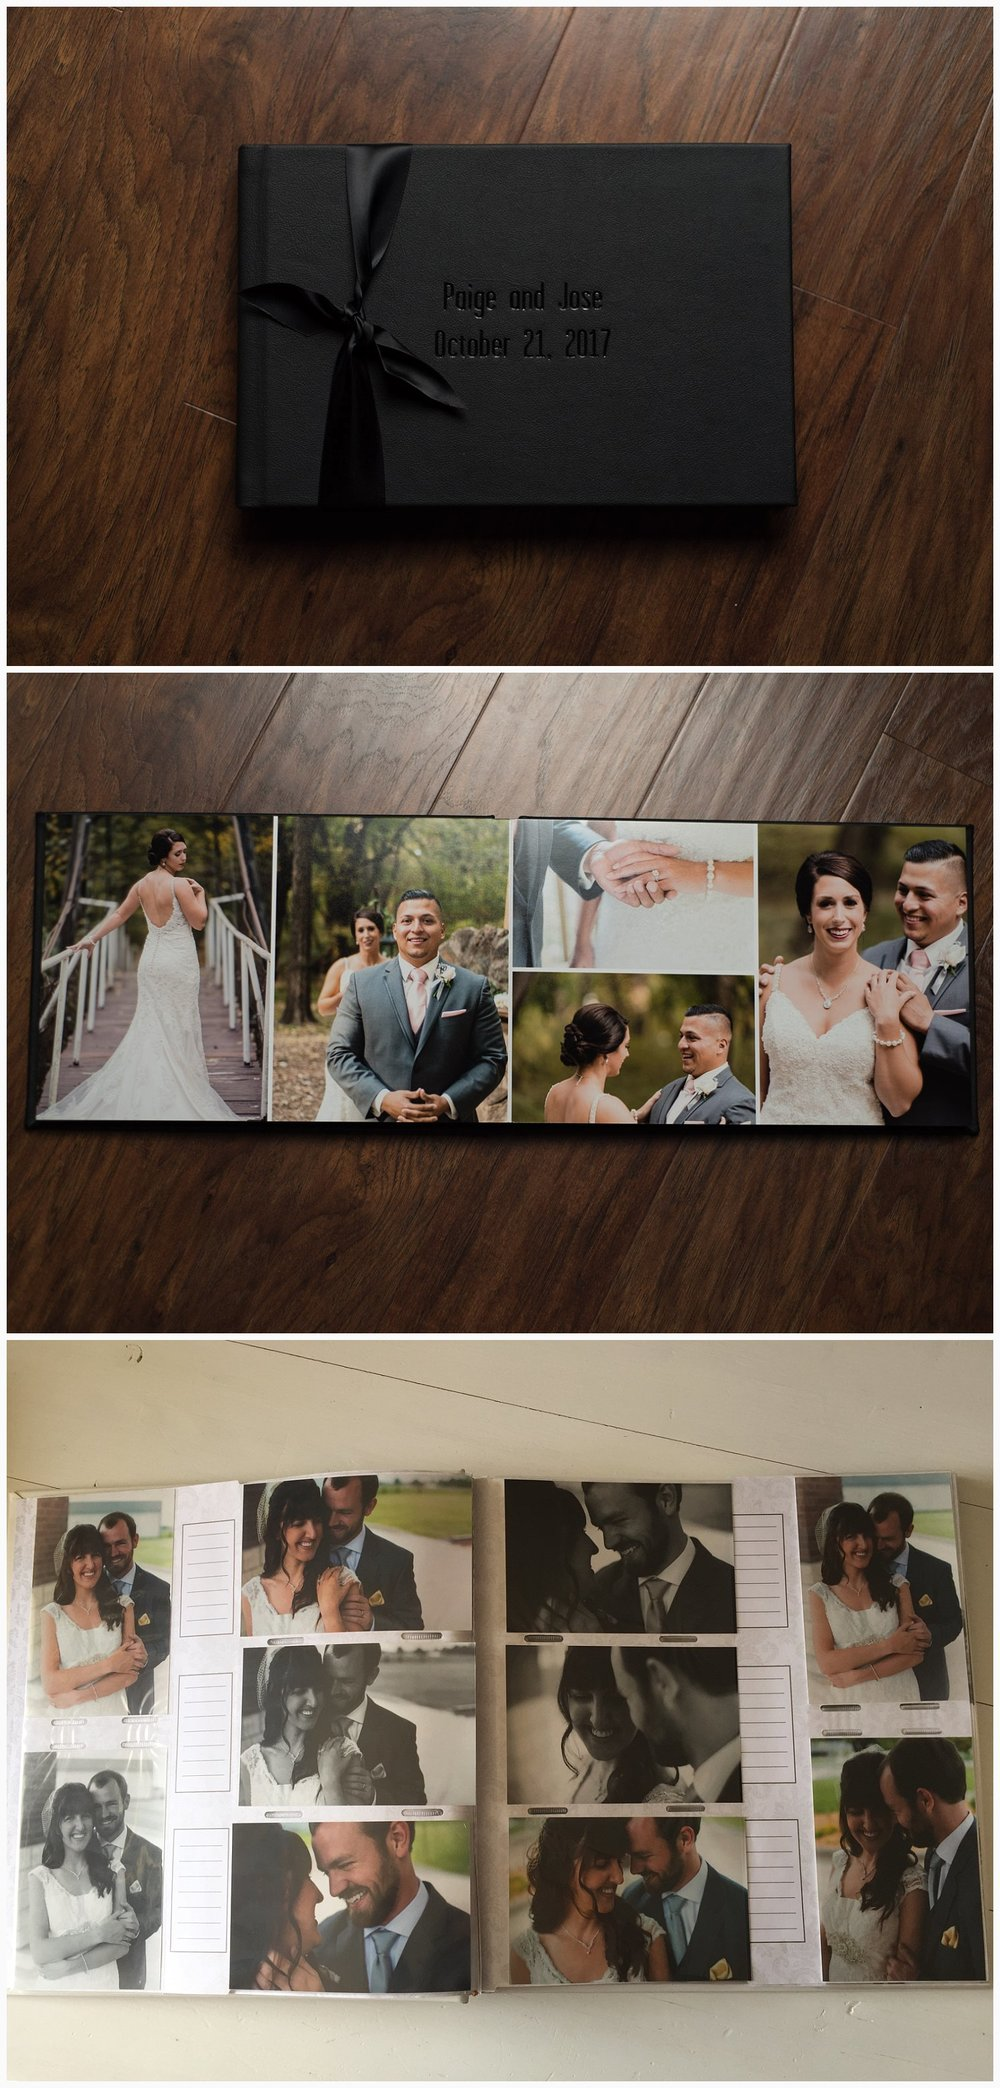 The top two pictures are one of our sample albums. The bottom picture is our personal wedding album. I really don't think I need to say anything else.